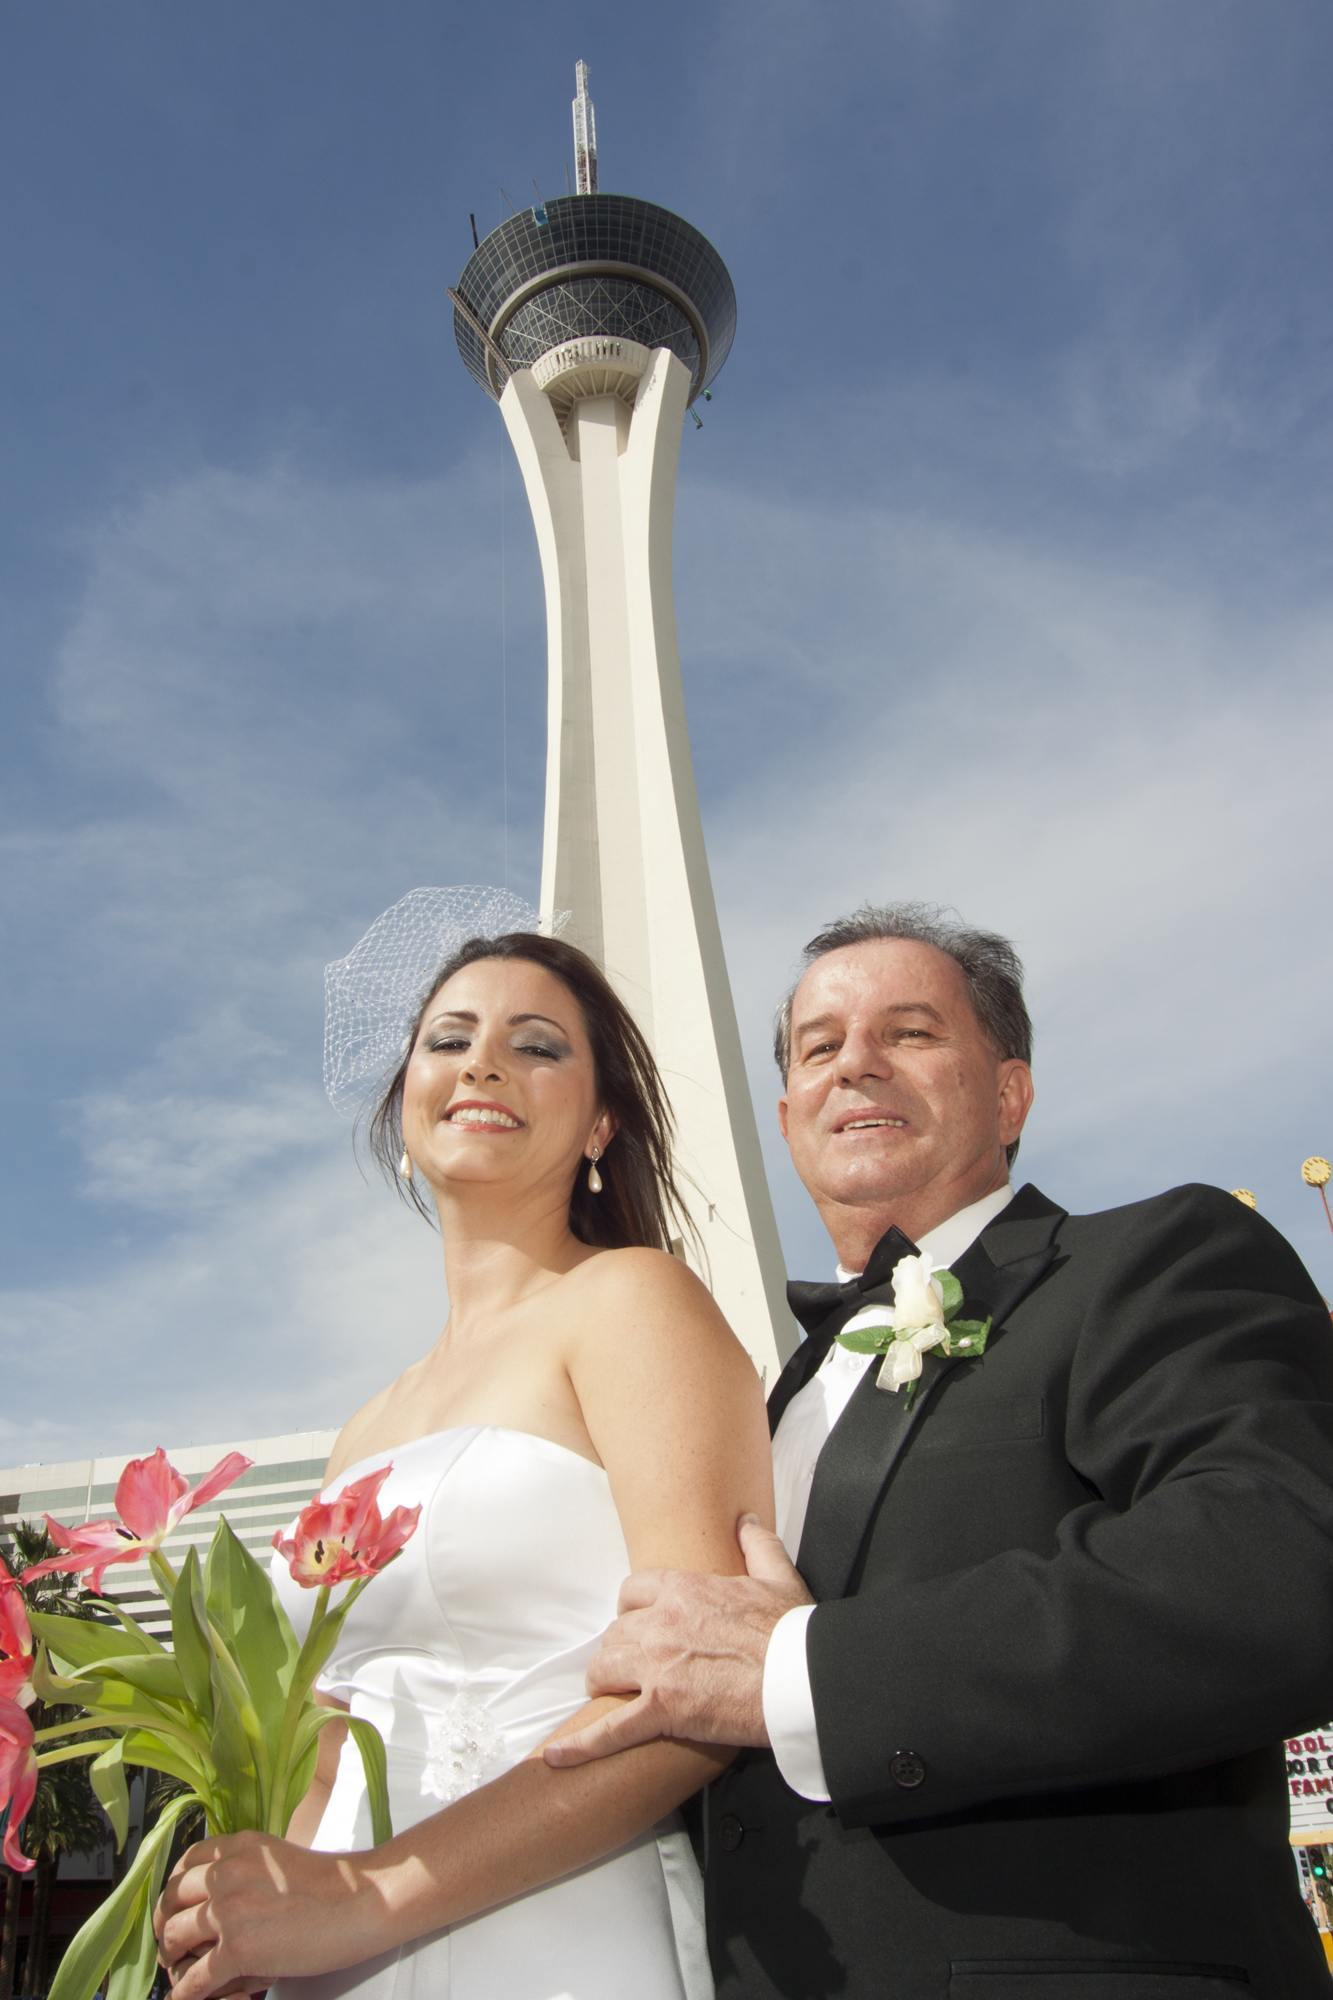 at our little las vegas elvis wedding chapel the view is great of the stratosphere